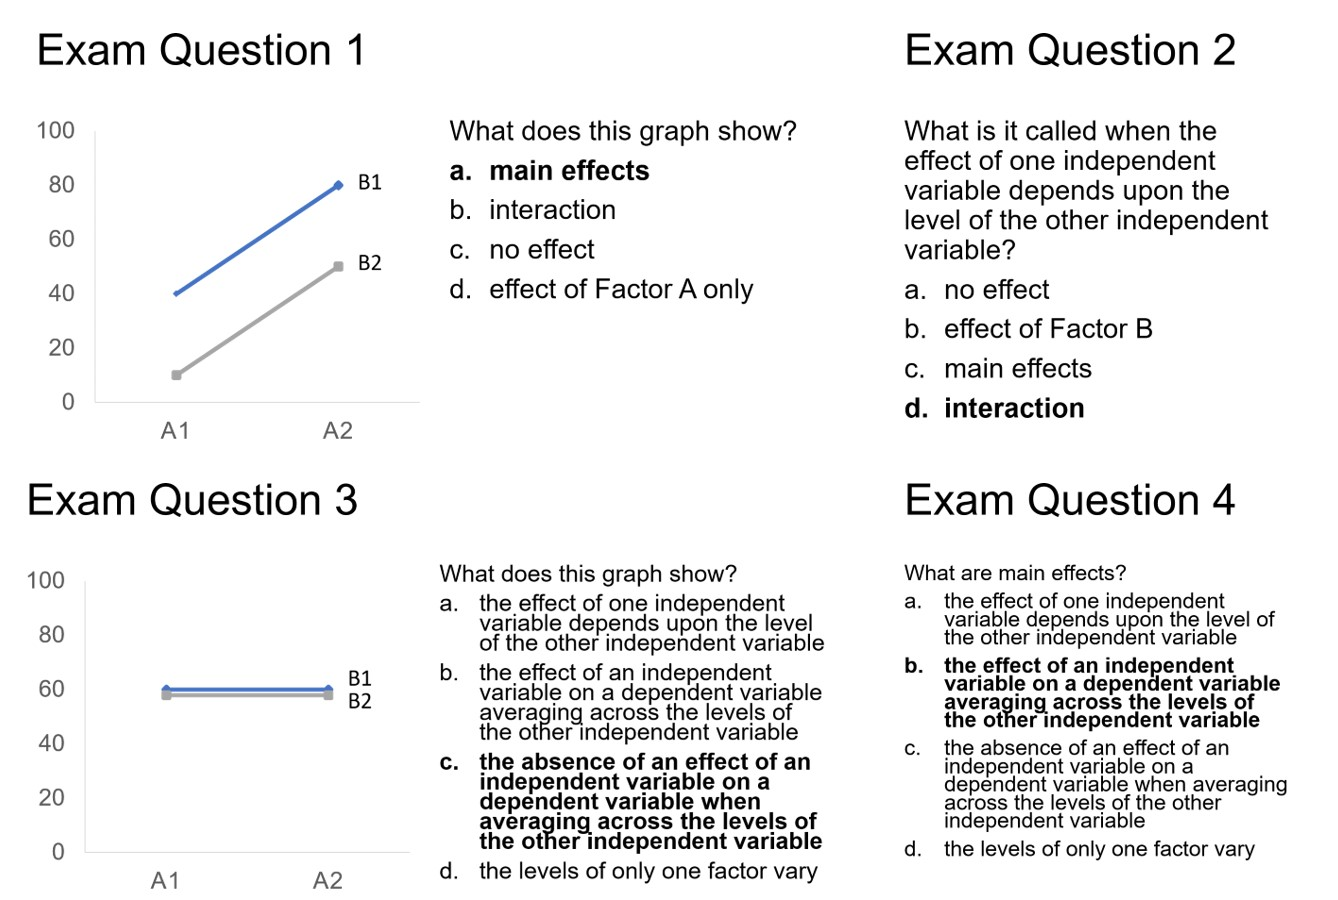 Figure 3. How we can test students on exams to see if they made new associations between terms, graphs, and their descriptions. The correct answers are bolded.